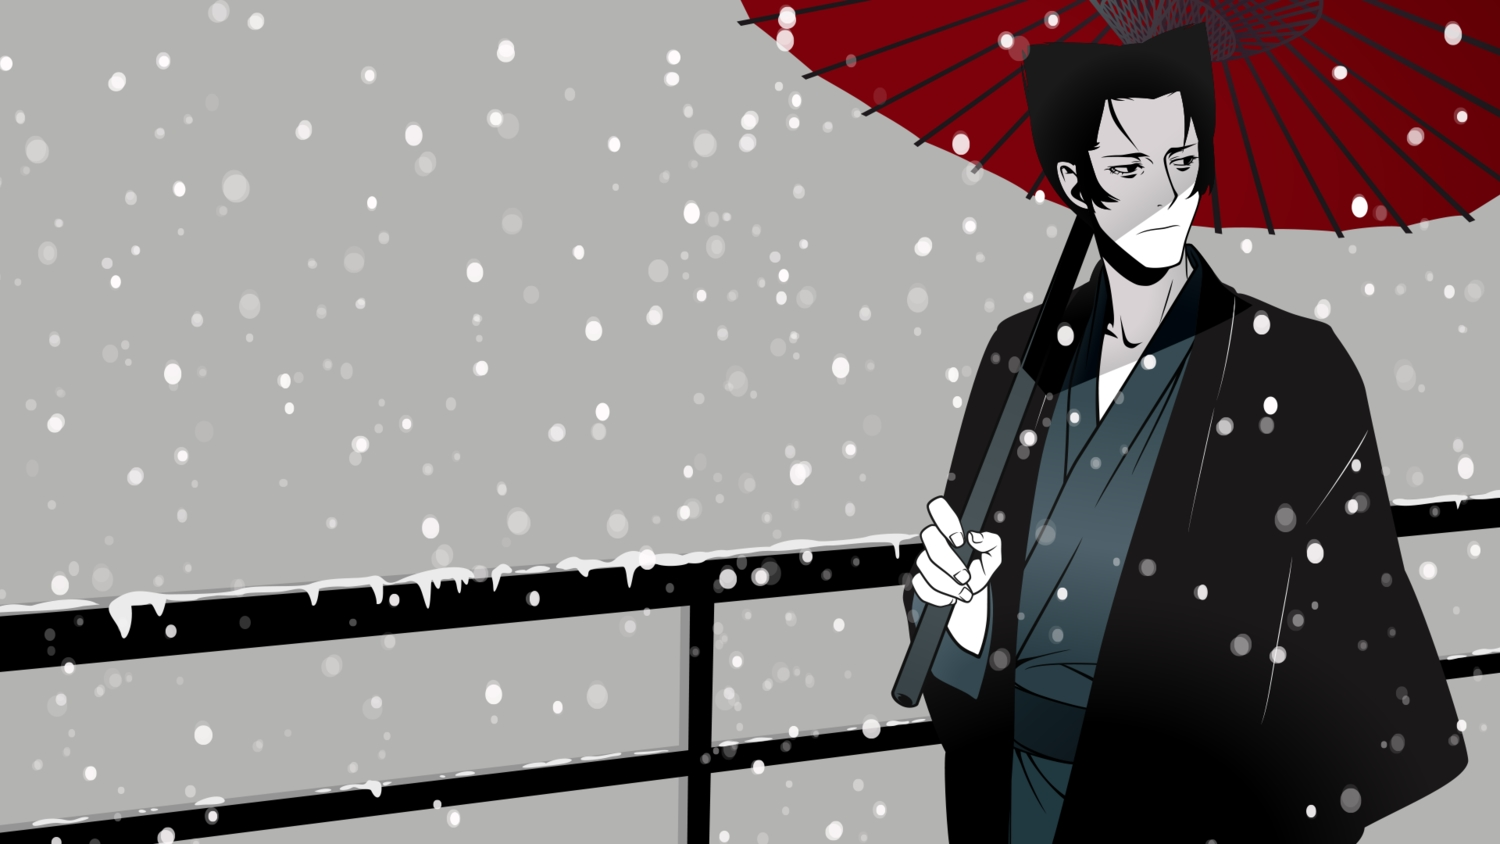 all_male bakemonogatari black_eyes black_hair kaiki_deishuu male monogatari_(series) short_hair snow umbrella vector